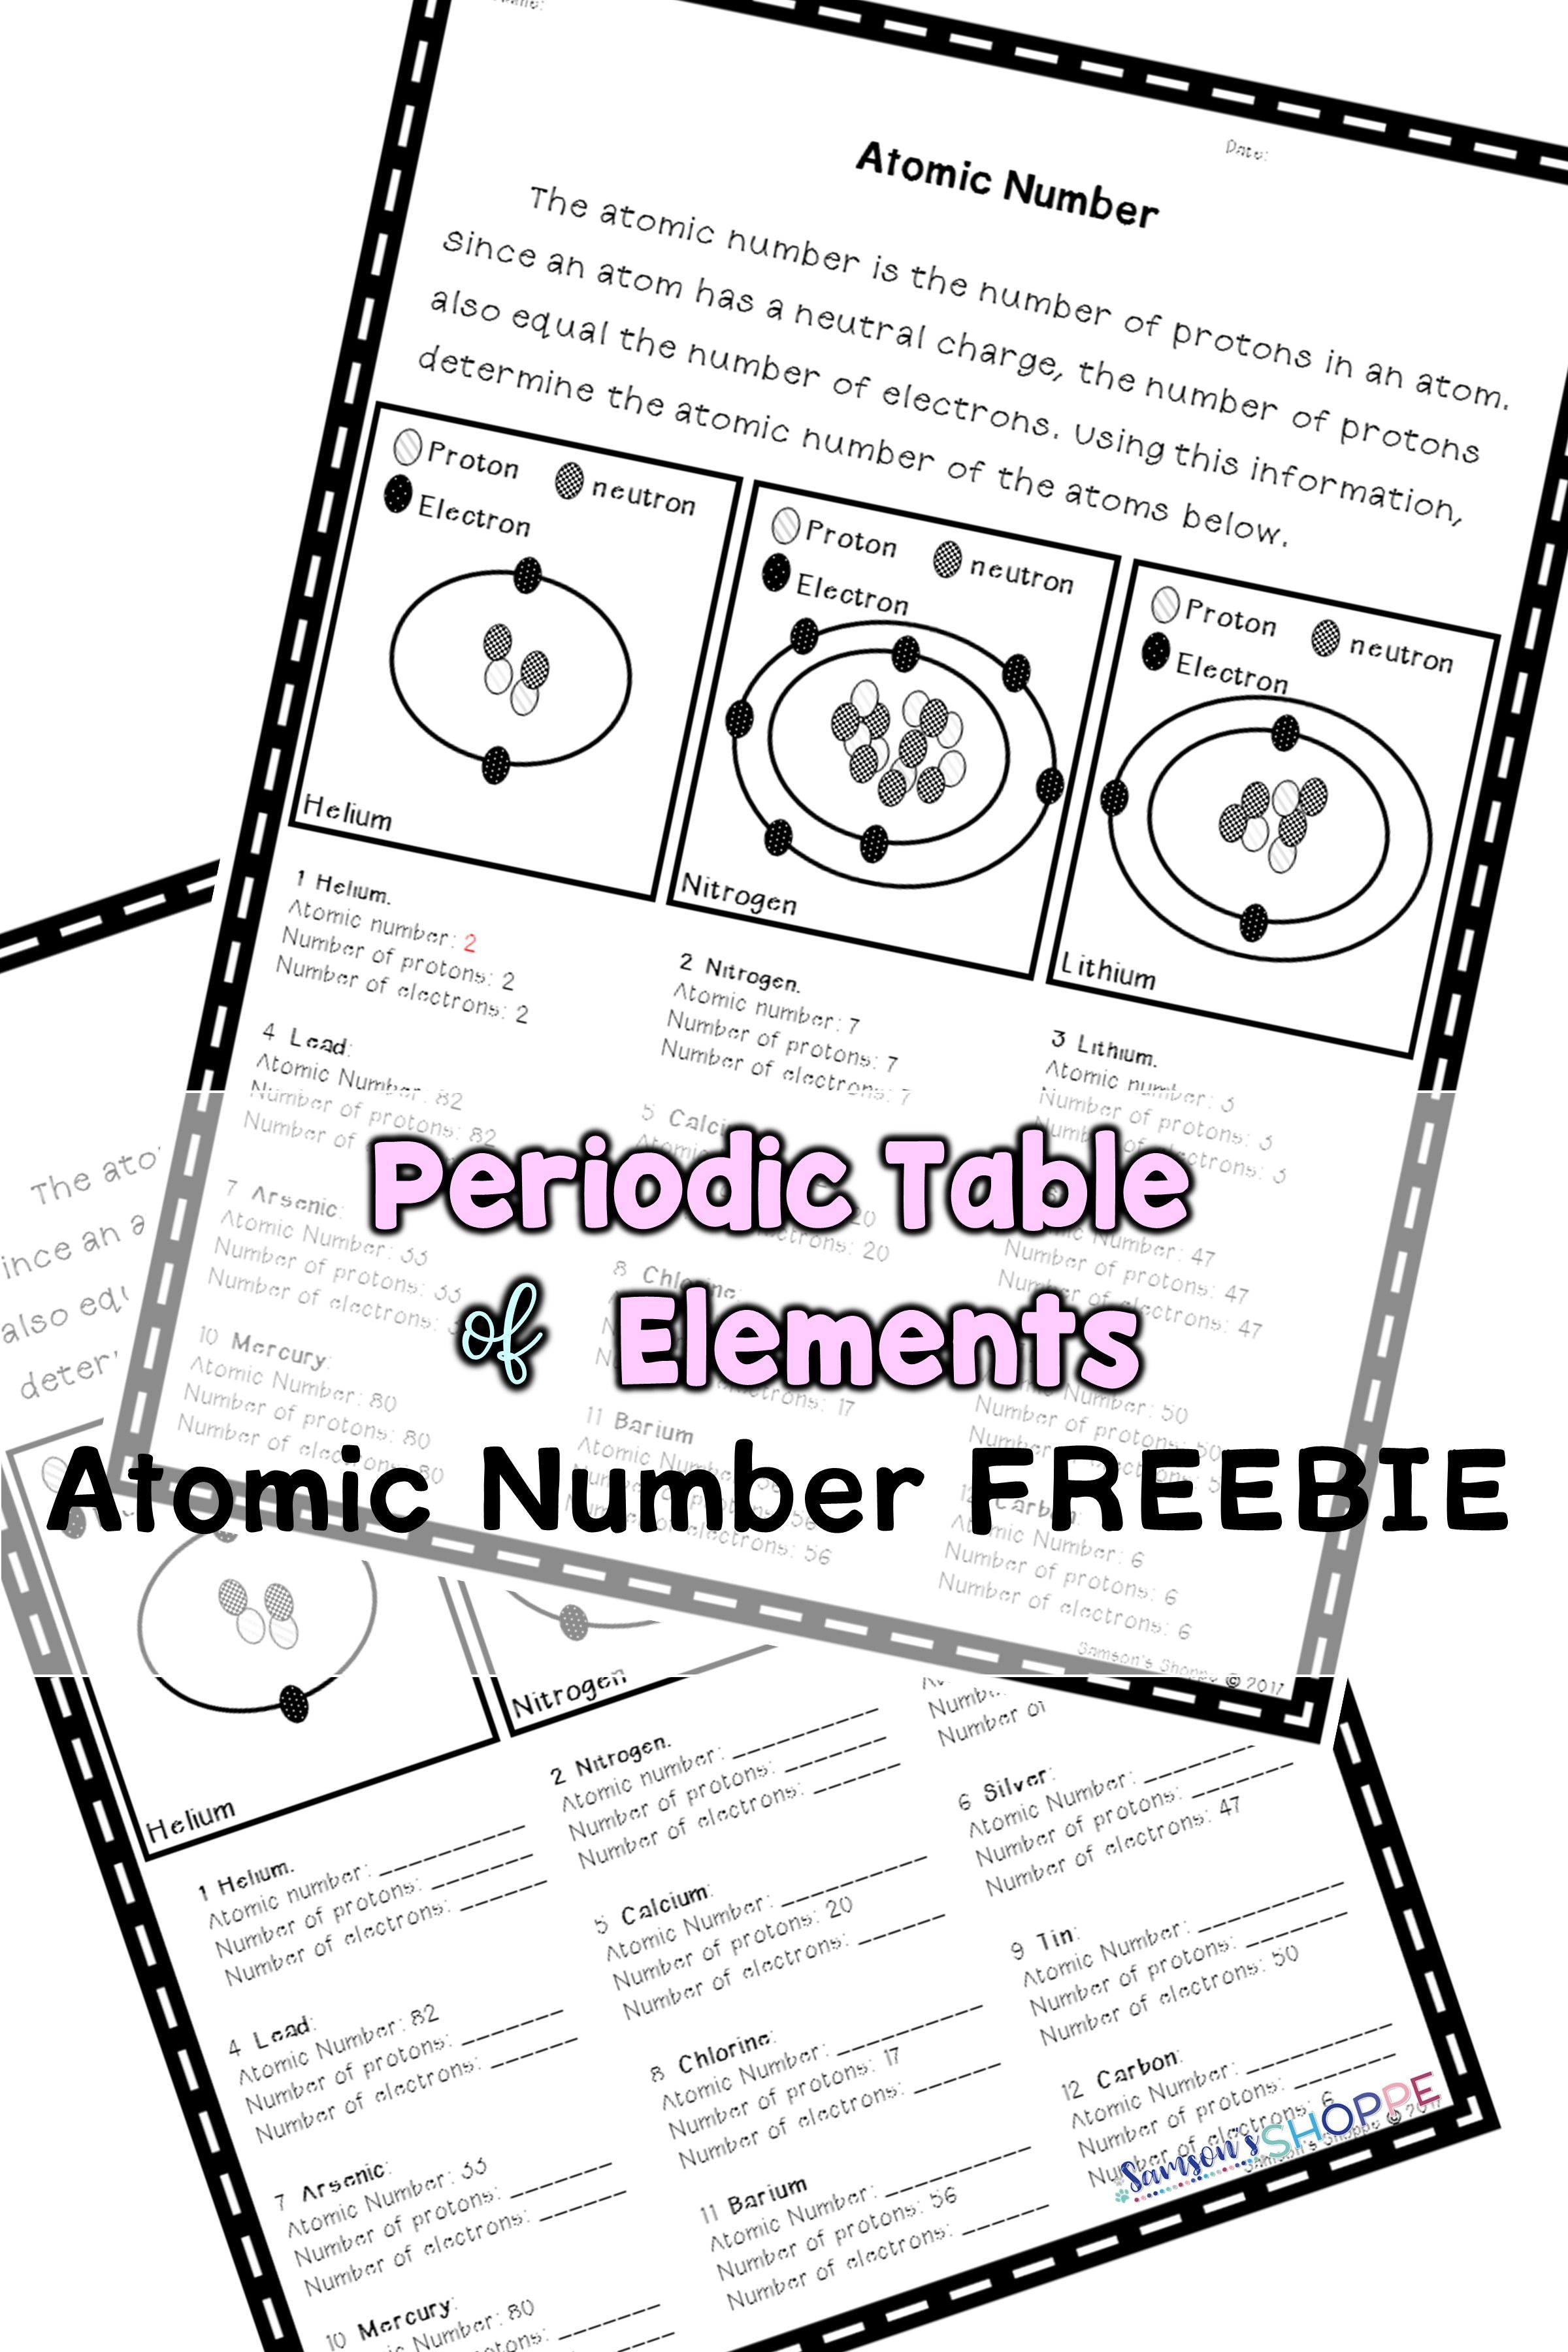 Atomic Number Review Activity